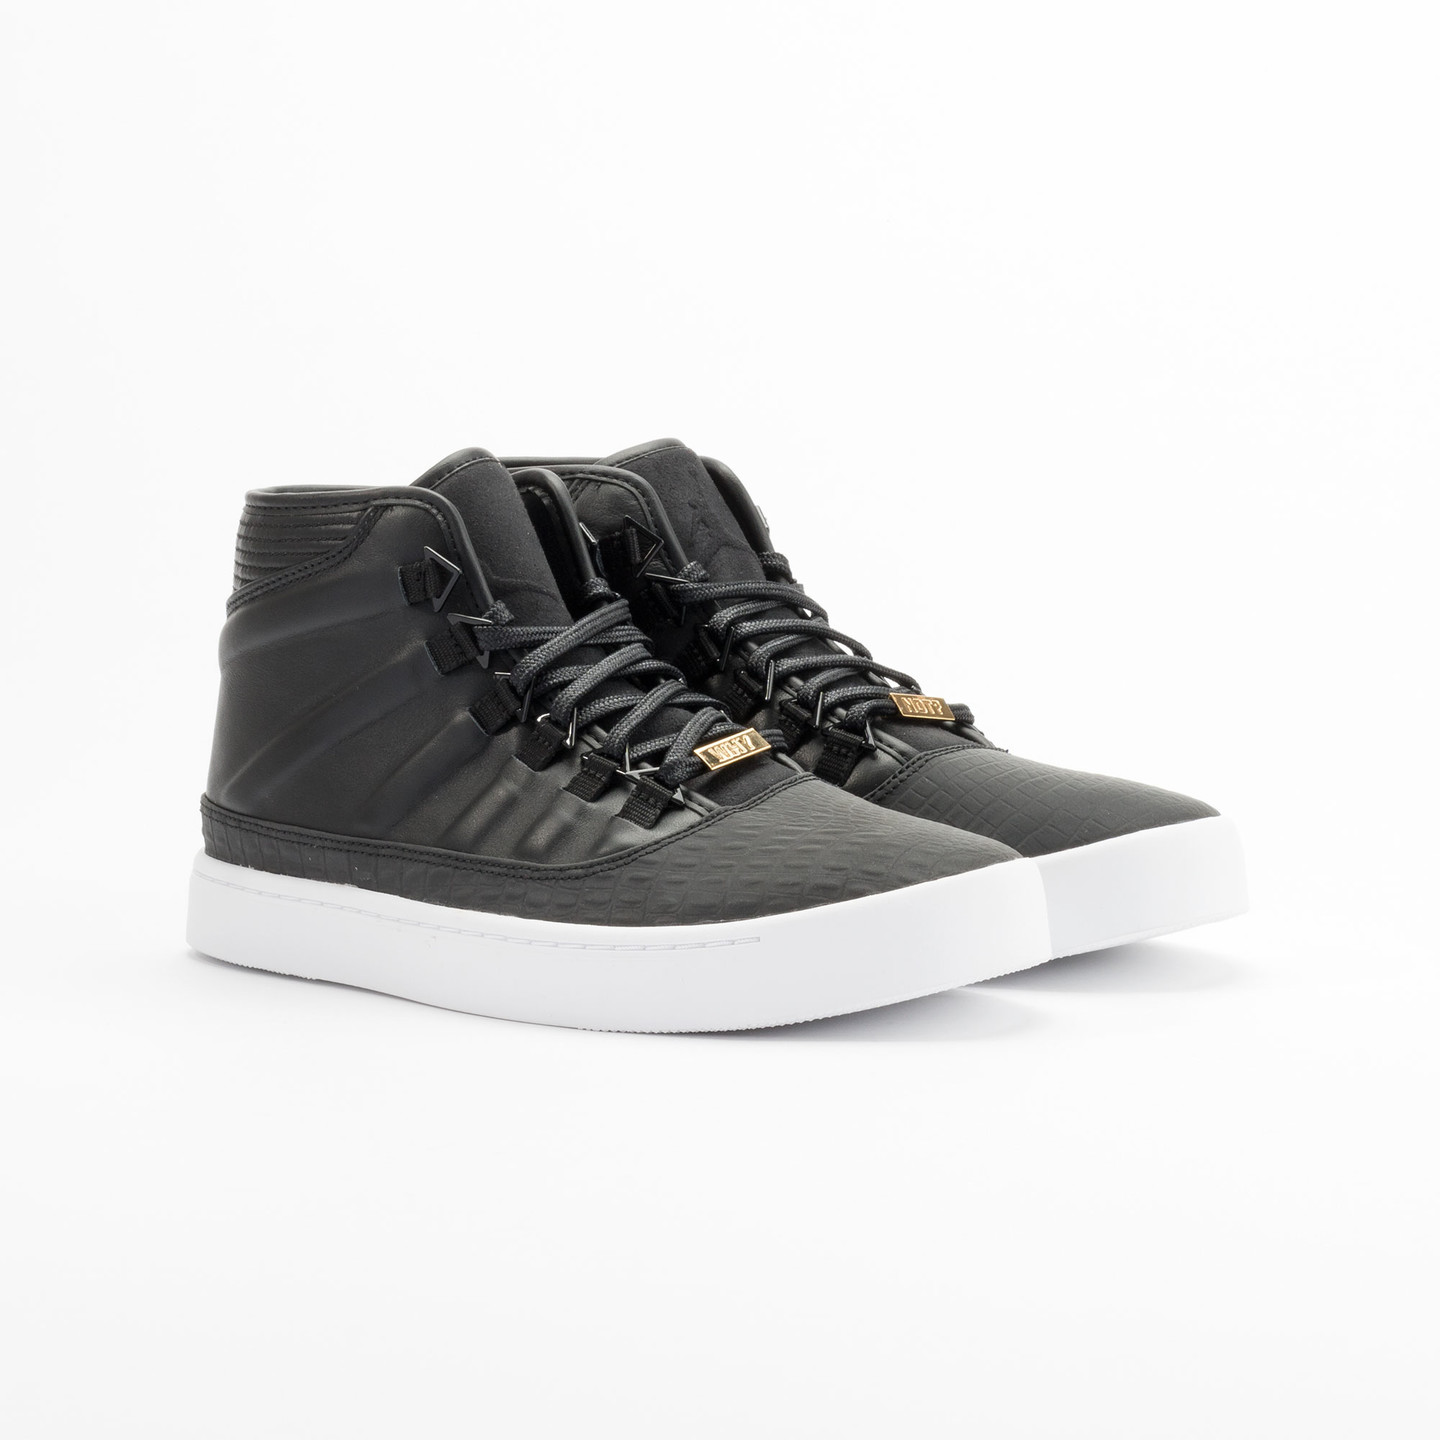 Jordan Westbrook 0 Black Metallic / Gold - White 768934-001-45